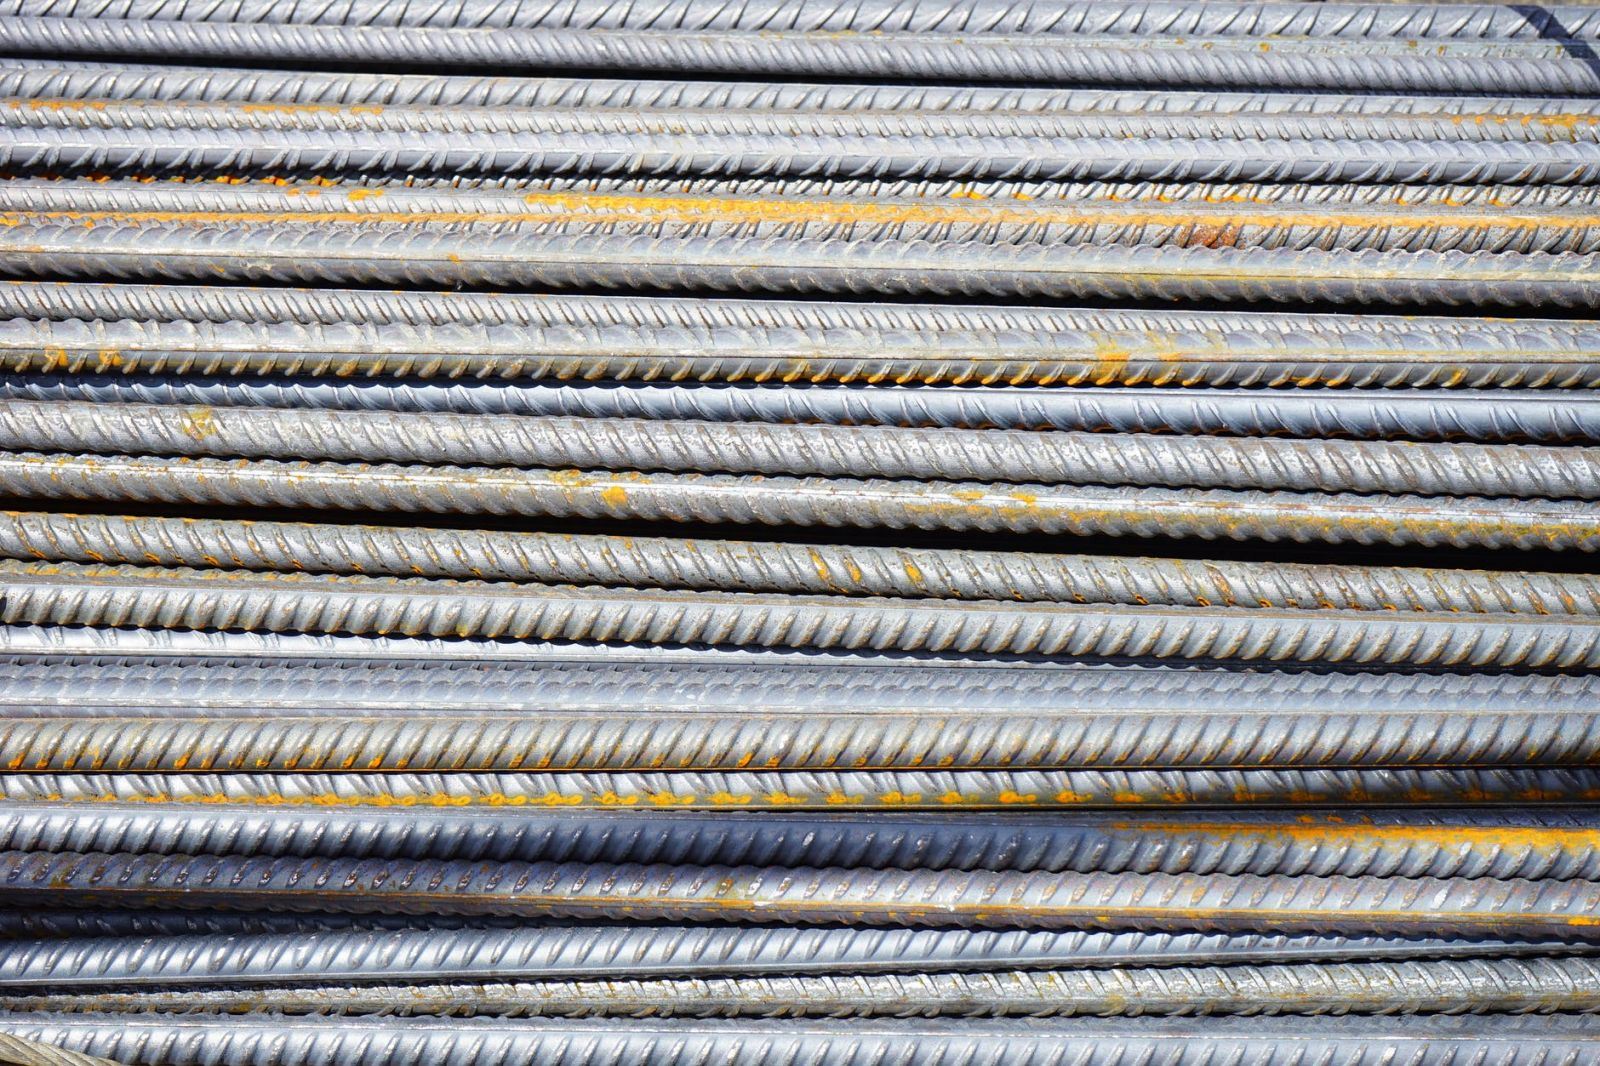 Rows of iron steel rods